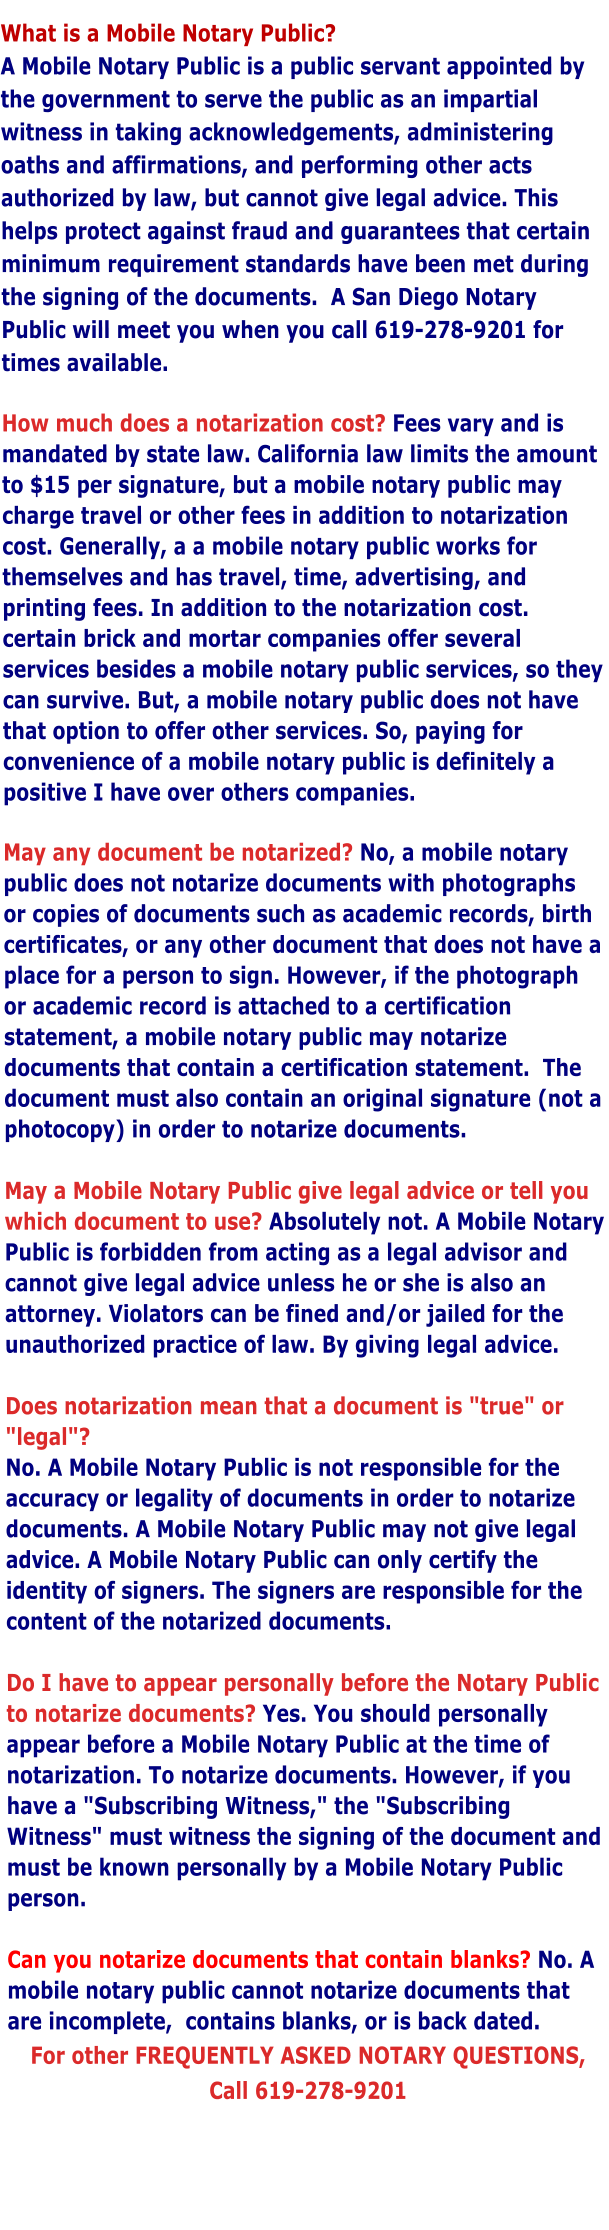 "What is a Mobile Notary Public?   A Mobile Notary Public is a public servant appointed by the government to serve the public as an impartial witness in taking acknowledgements, administering oaths and affirmations, and performing other acts authorized by law, but cannot give legal advice. This helps protect against fraud and guarantees that certain minimum requirement standards have been met during the signing of the documents.  A San Diego Notary Public will meet you when you call 619-278-9201 for times available.  How much does a notarization cost? Fees vary and is mandated by state law. California law limits the amount to $15 per signature, but a mobile notary public may charge travel or other fees in addition to notarization cost. Generally, a a mobile notary public works for themselves and has travel, time, advertising, and printing fees. In addition to the notarization cost. certain brick and mortar companies offer several services besides a mobile notary public services, so they can survive. But, a mobile notary public does not have that option to offer other services. So, paying for convenience of a mobile notary public is definitely a positive I have over others companies.  May any document be notarized? No, a mobile notary public does not notarize documents with photographs or copies of documents such as academic records, birth certificates, or any other document that does not have a place for a person to sign. However, if the photograph or academic record is attached to a certification statement, a mobile notary public may notarize documents that contain a certification statement.  The document must also contain an original signature (not a photocopy) in order to notarize documents.    May a Mobile Notary Public give legal advice or tell you which document to use? Absolutely not. A Mobile Notary Public is forbidden from acting as a legal advisor and cannot give legal advice unless he or she is also an attorney. Violators can be fined and/or jailed for the unauthorized practice of law. By giving legal advice.   Does notarization mean that a document is ""true"" or ""legal""?  No. A Mobile Notary Public is not responsible for the accuracy or legality of documents in order to notarize documents. A Mobile Notary Public may not give legal advice. A Mobile Notary Public can only certify the identity of signers. The signers are responsible for the content of the notarized documents.  Do I have to appear personally before the Notary Public to notarize documents? Yes. You should personally appear before a Mobile Notary Public at the time of notarization. To notarize documents. However, if you have a ""Subscribing Witness,"" the ""Subscribing Witness"" must witness the signing of the document and must be known personally by a Mobile Notary Public person.  Can you notarize documents that contain blanks? No. A mobile notary public cannot notarize documents that are incomplete,  contains blanks, or is back dated. For other FREQUENTLY ASKED NOTARY QUESTIONS,  Call 619-278-9201"